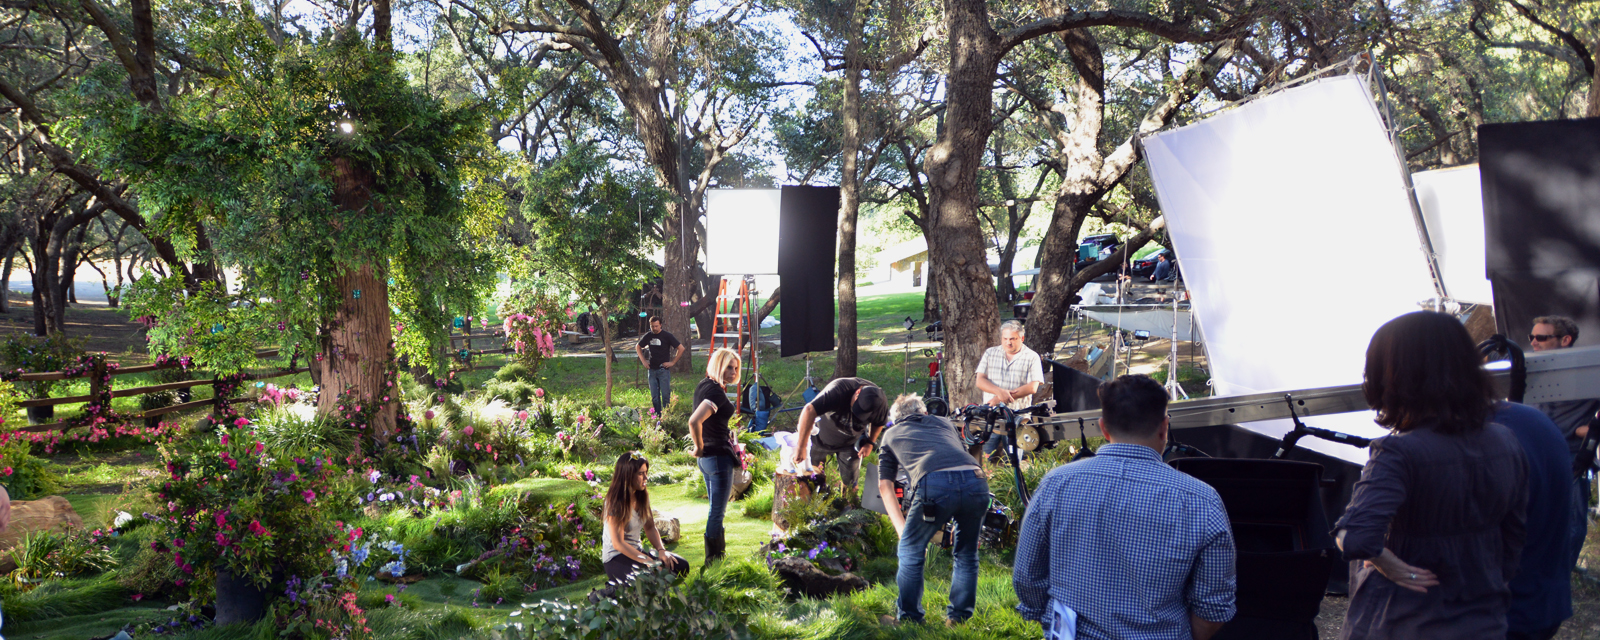 Toy Commercial, location shoot, calabasas, set lighting, geronimo creek, gaffer